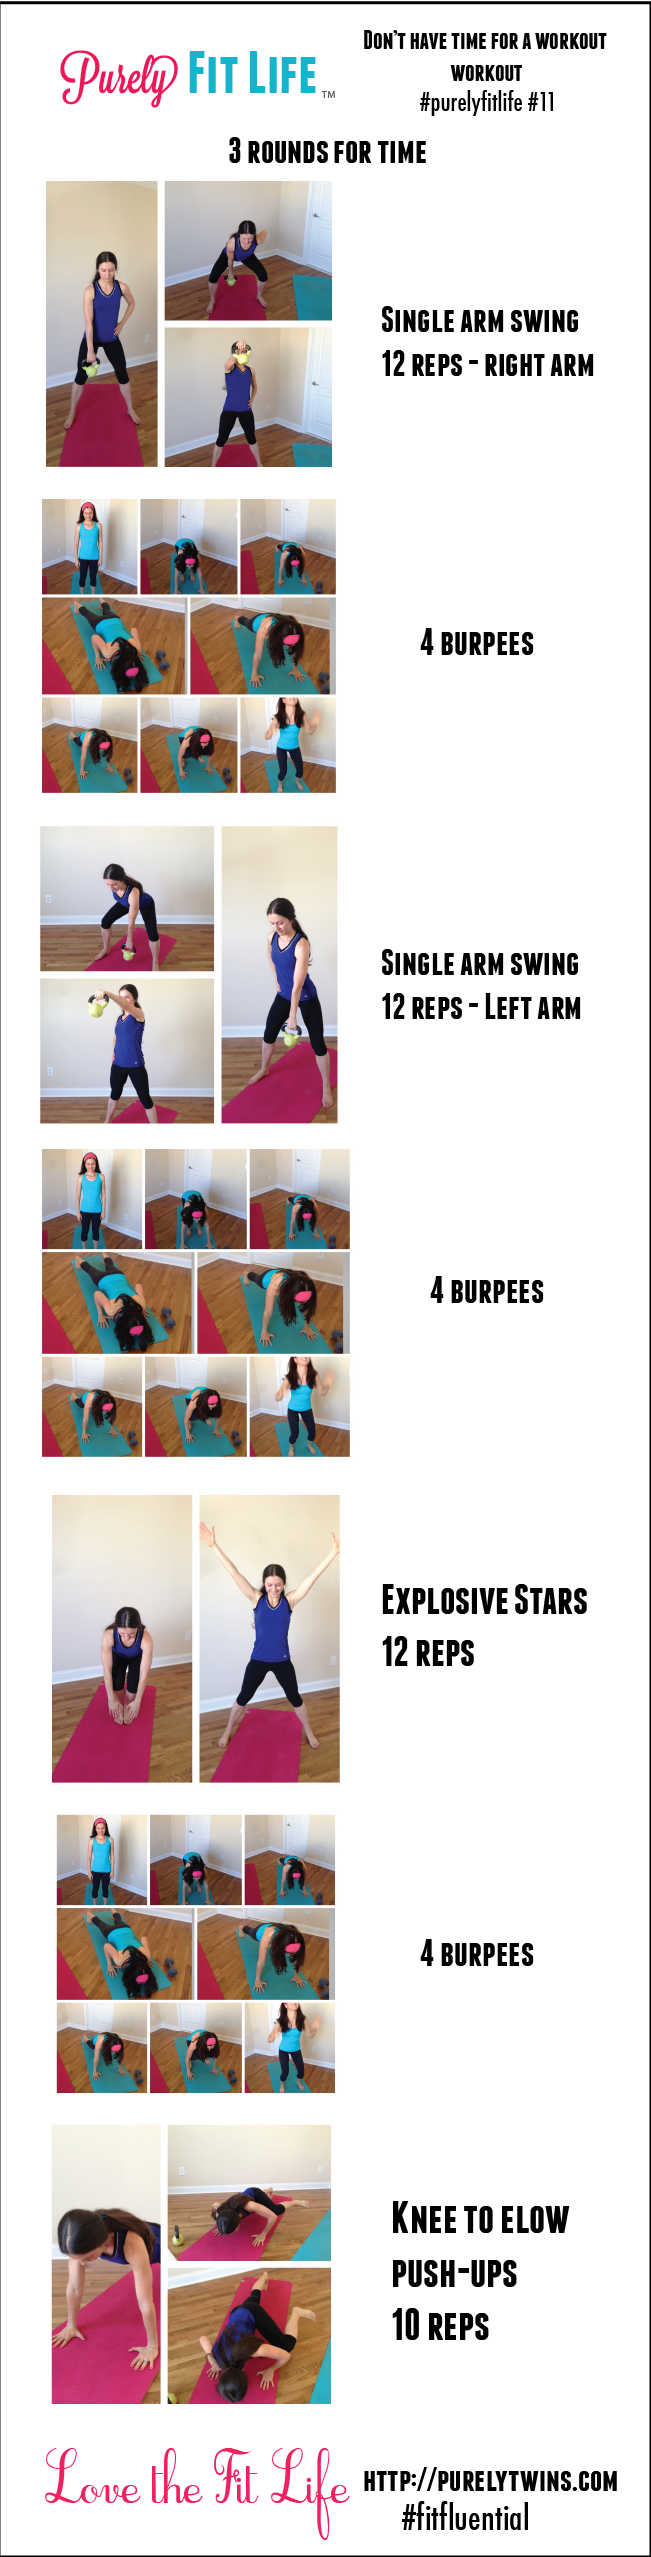 purelyfitlife #11 home workout for when you are short on time